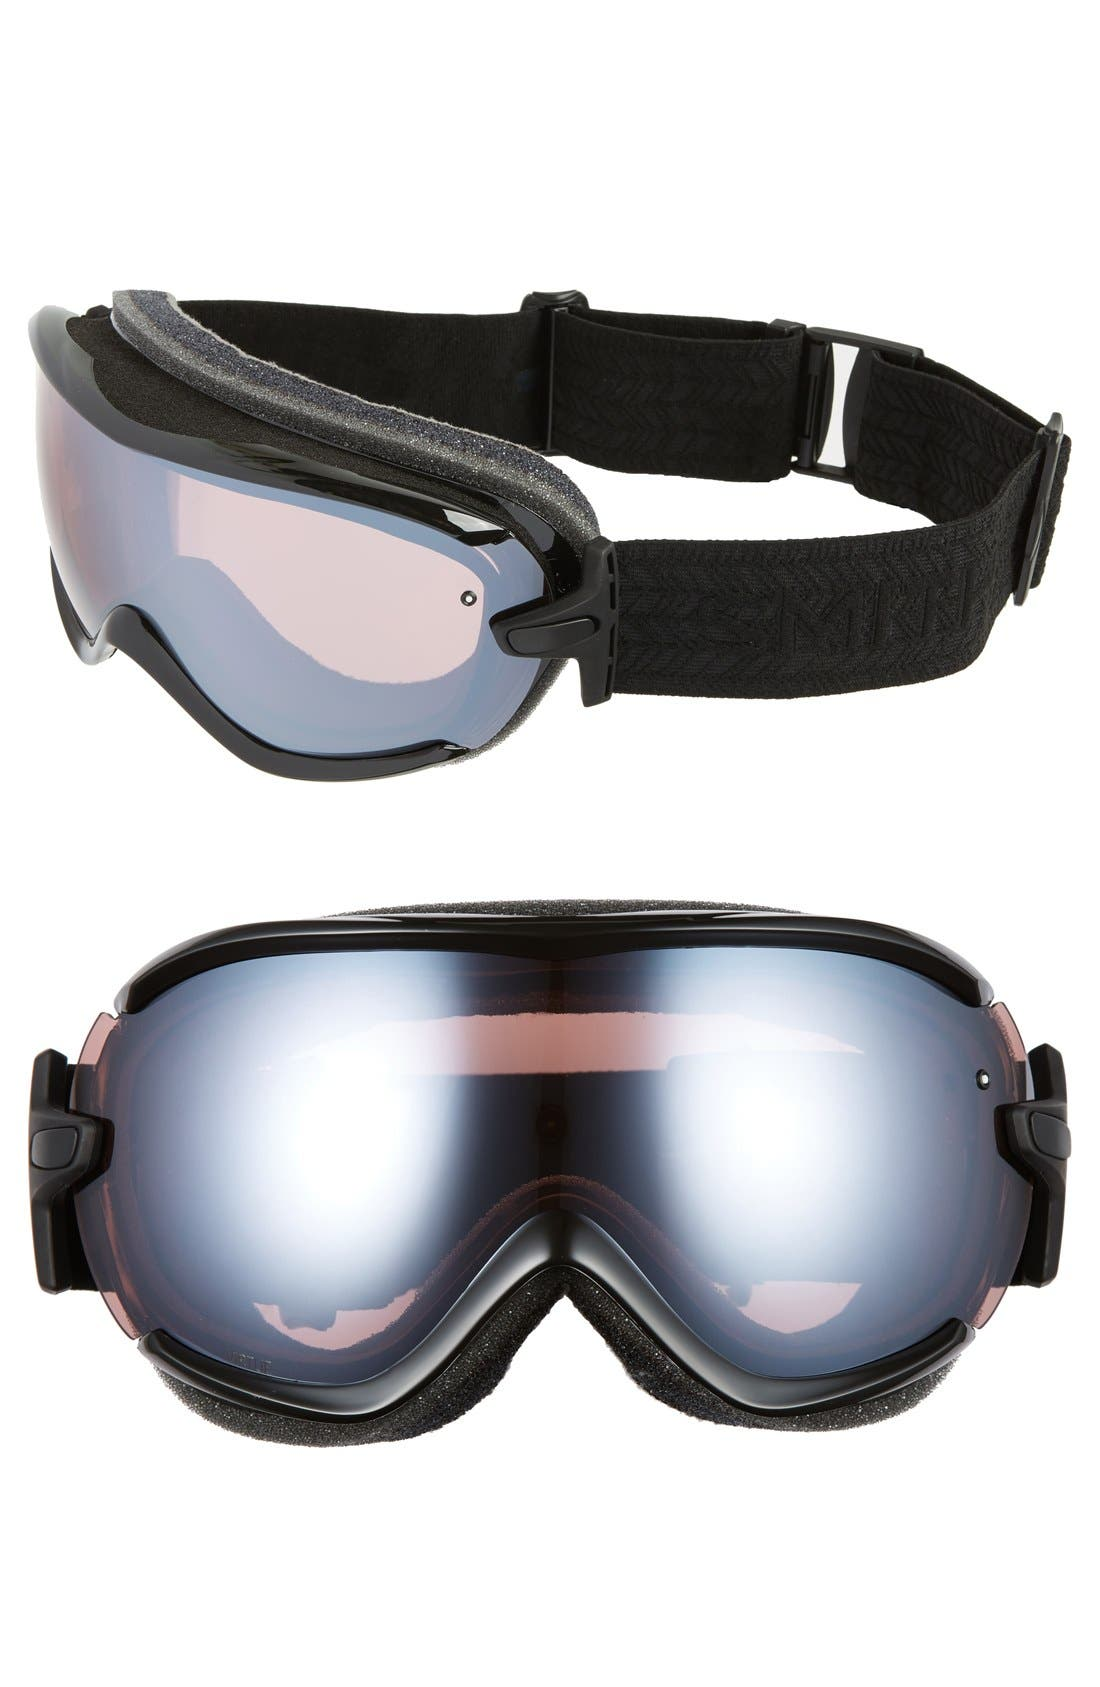 'Virtue' Snow Goggles,                             Main thumbnail 1, color,                             Black Eclipse/ Ignitor Mirror